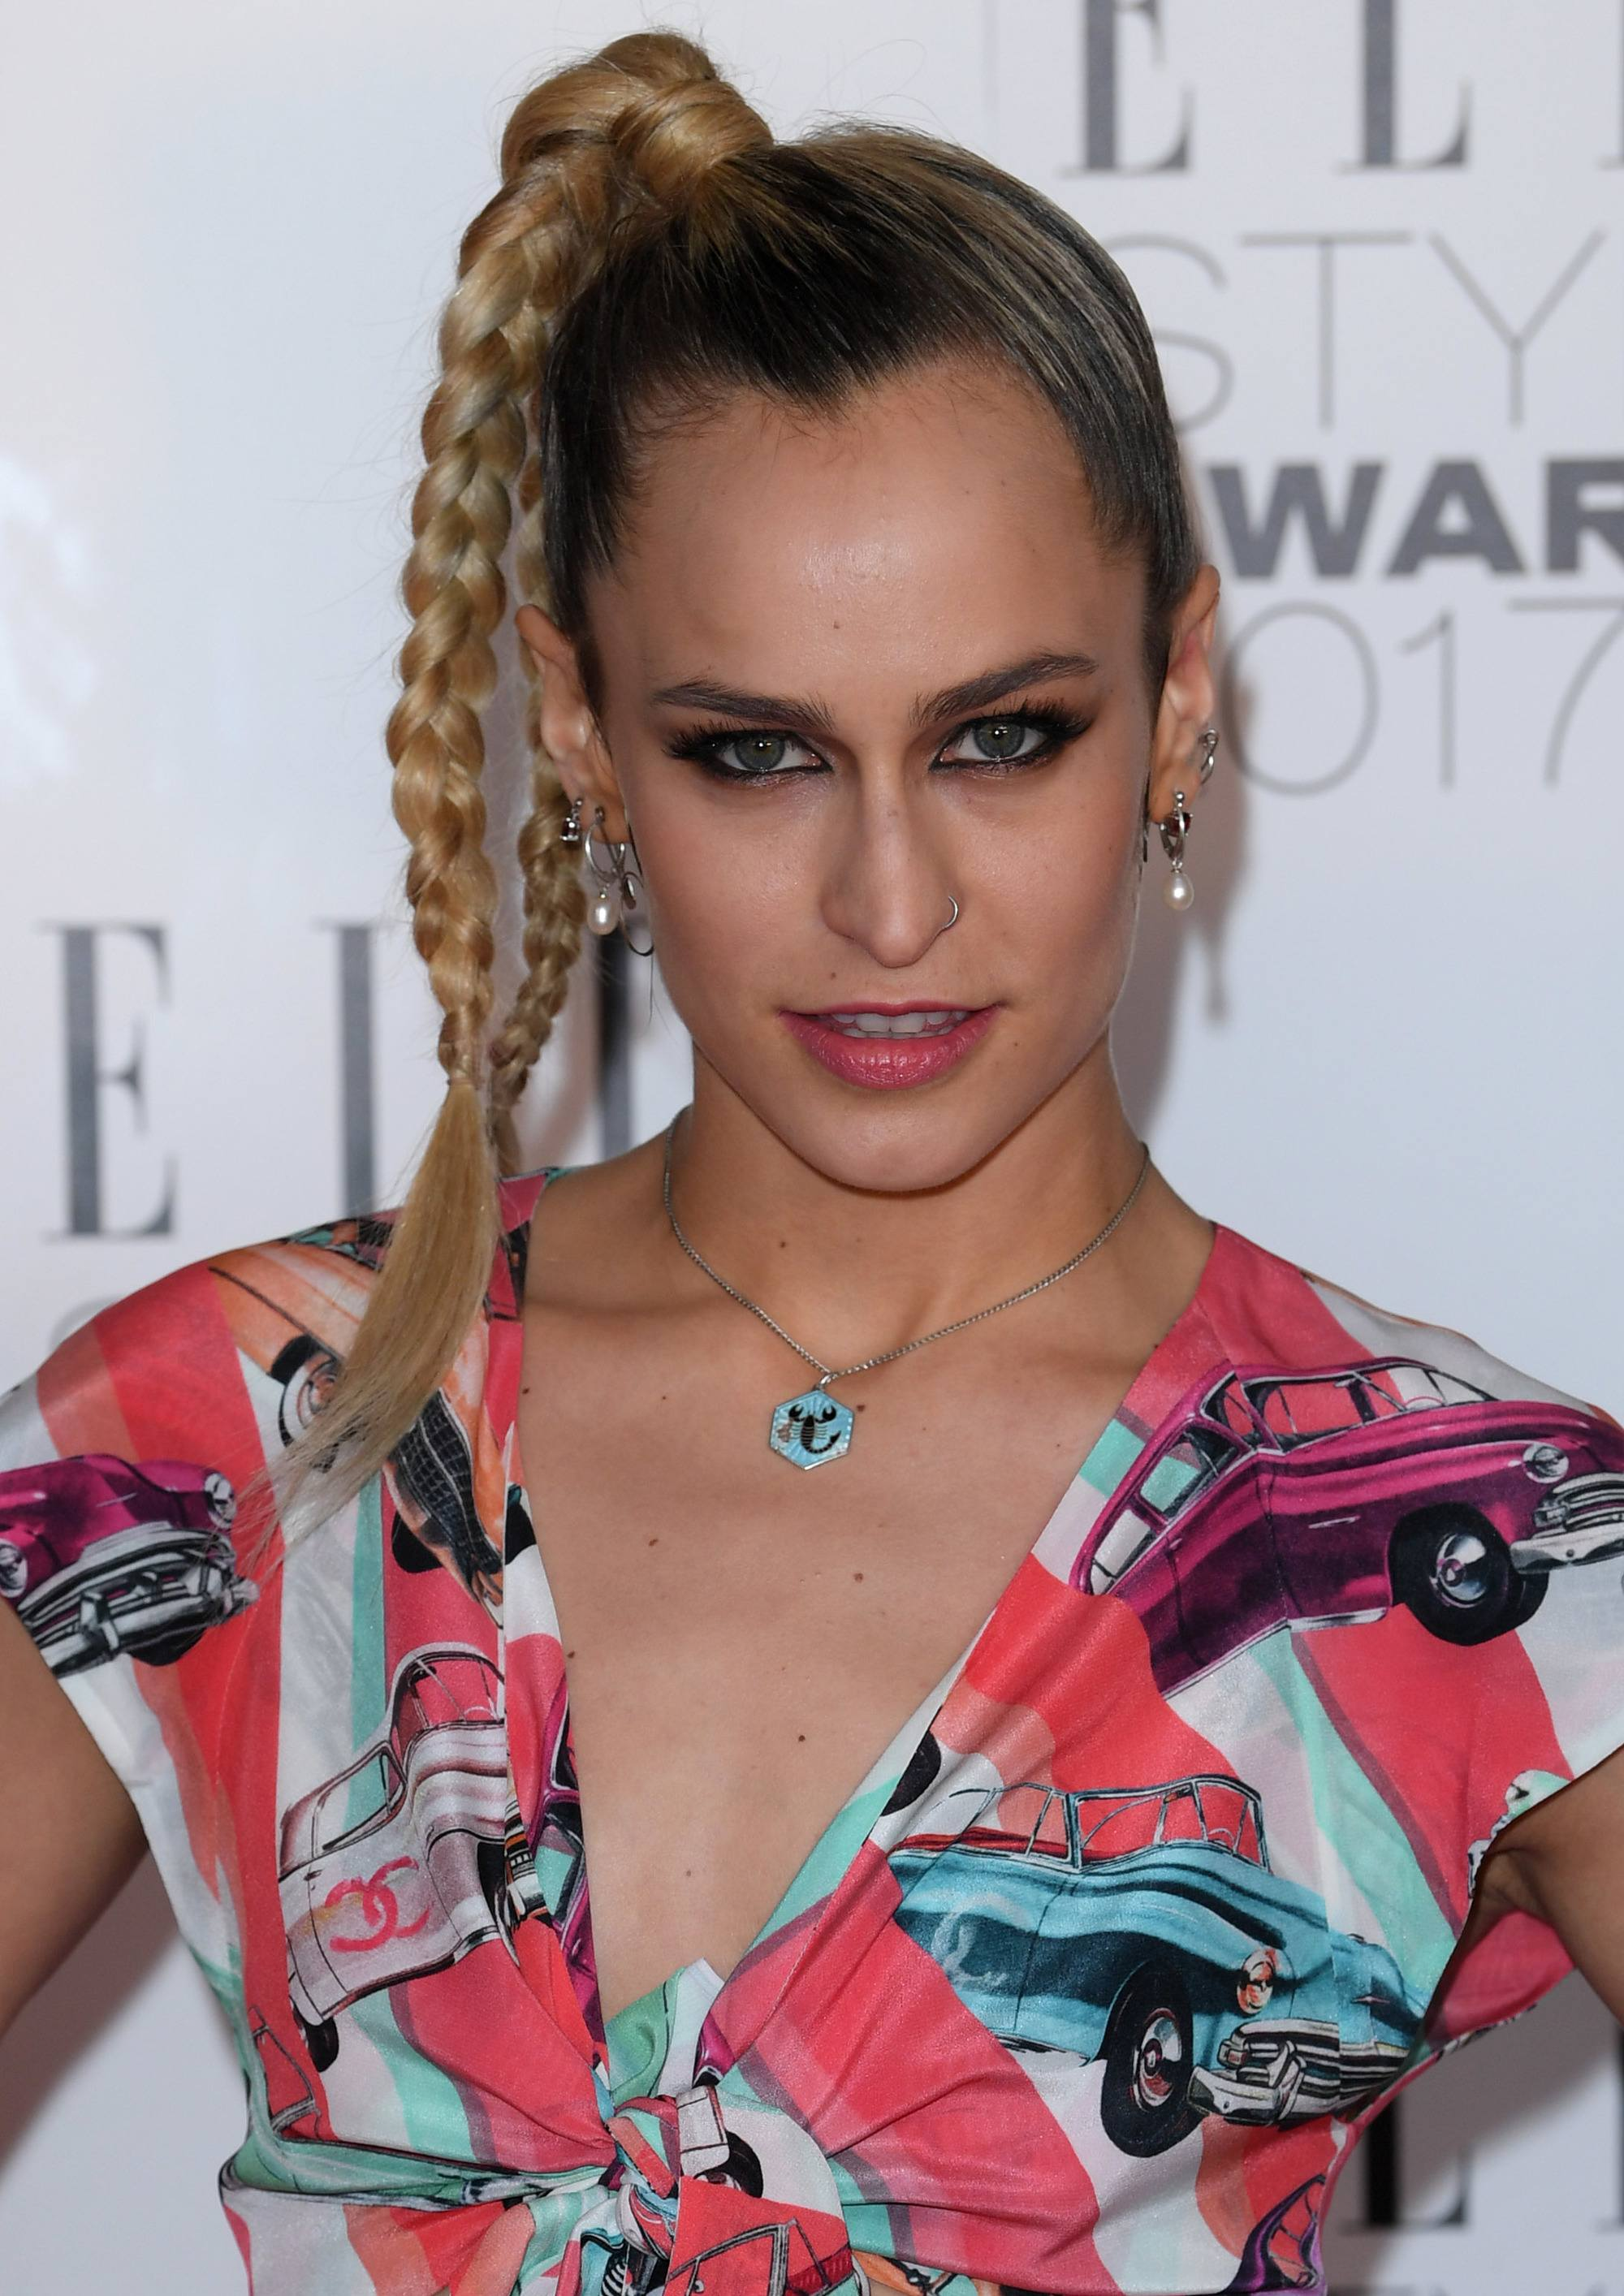 Alice Dellal at the elle style awards in a car print top with her blonde hair styled in a braided ponytail